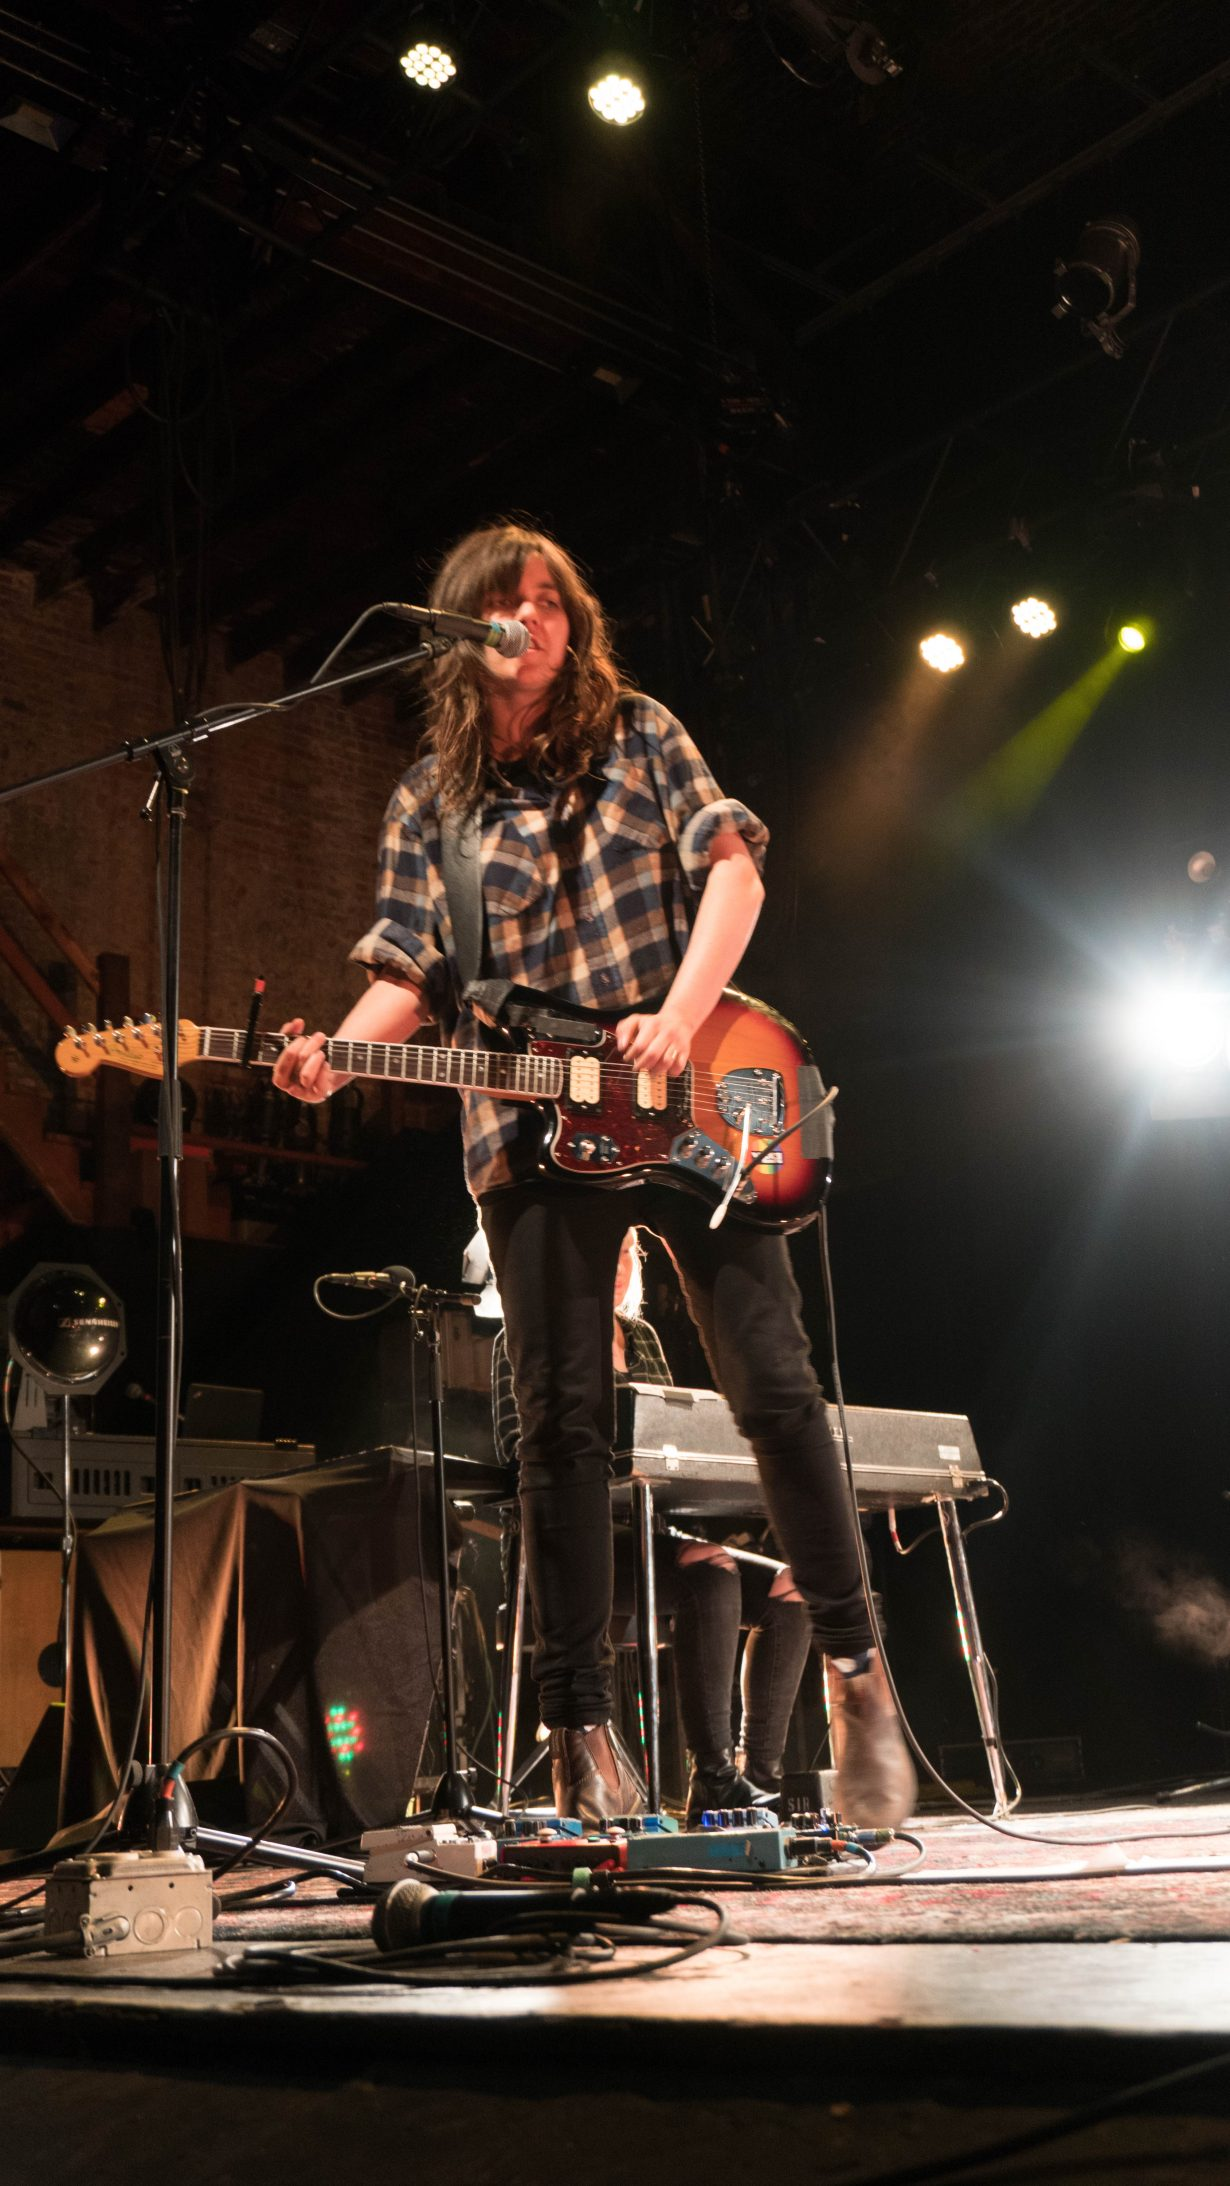 DSC02021 1 1230x2186 Courtney Barnett and Kurt Vile Rock Out on 2nd Sold Out Chicago Show at Thalia Hall